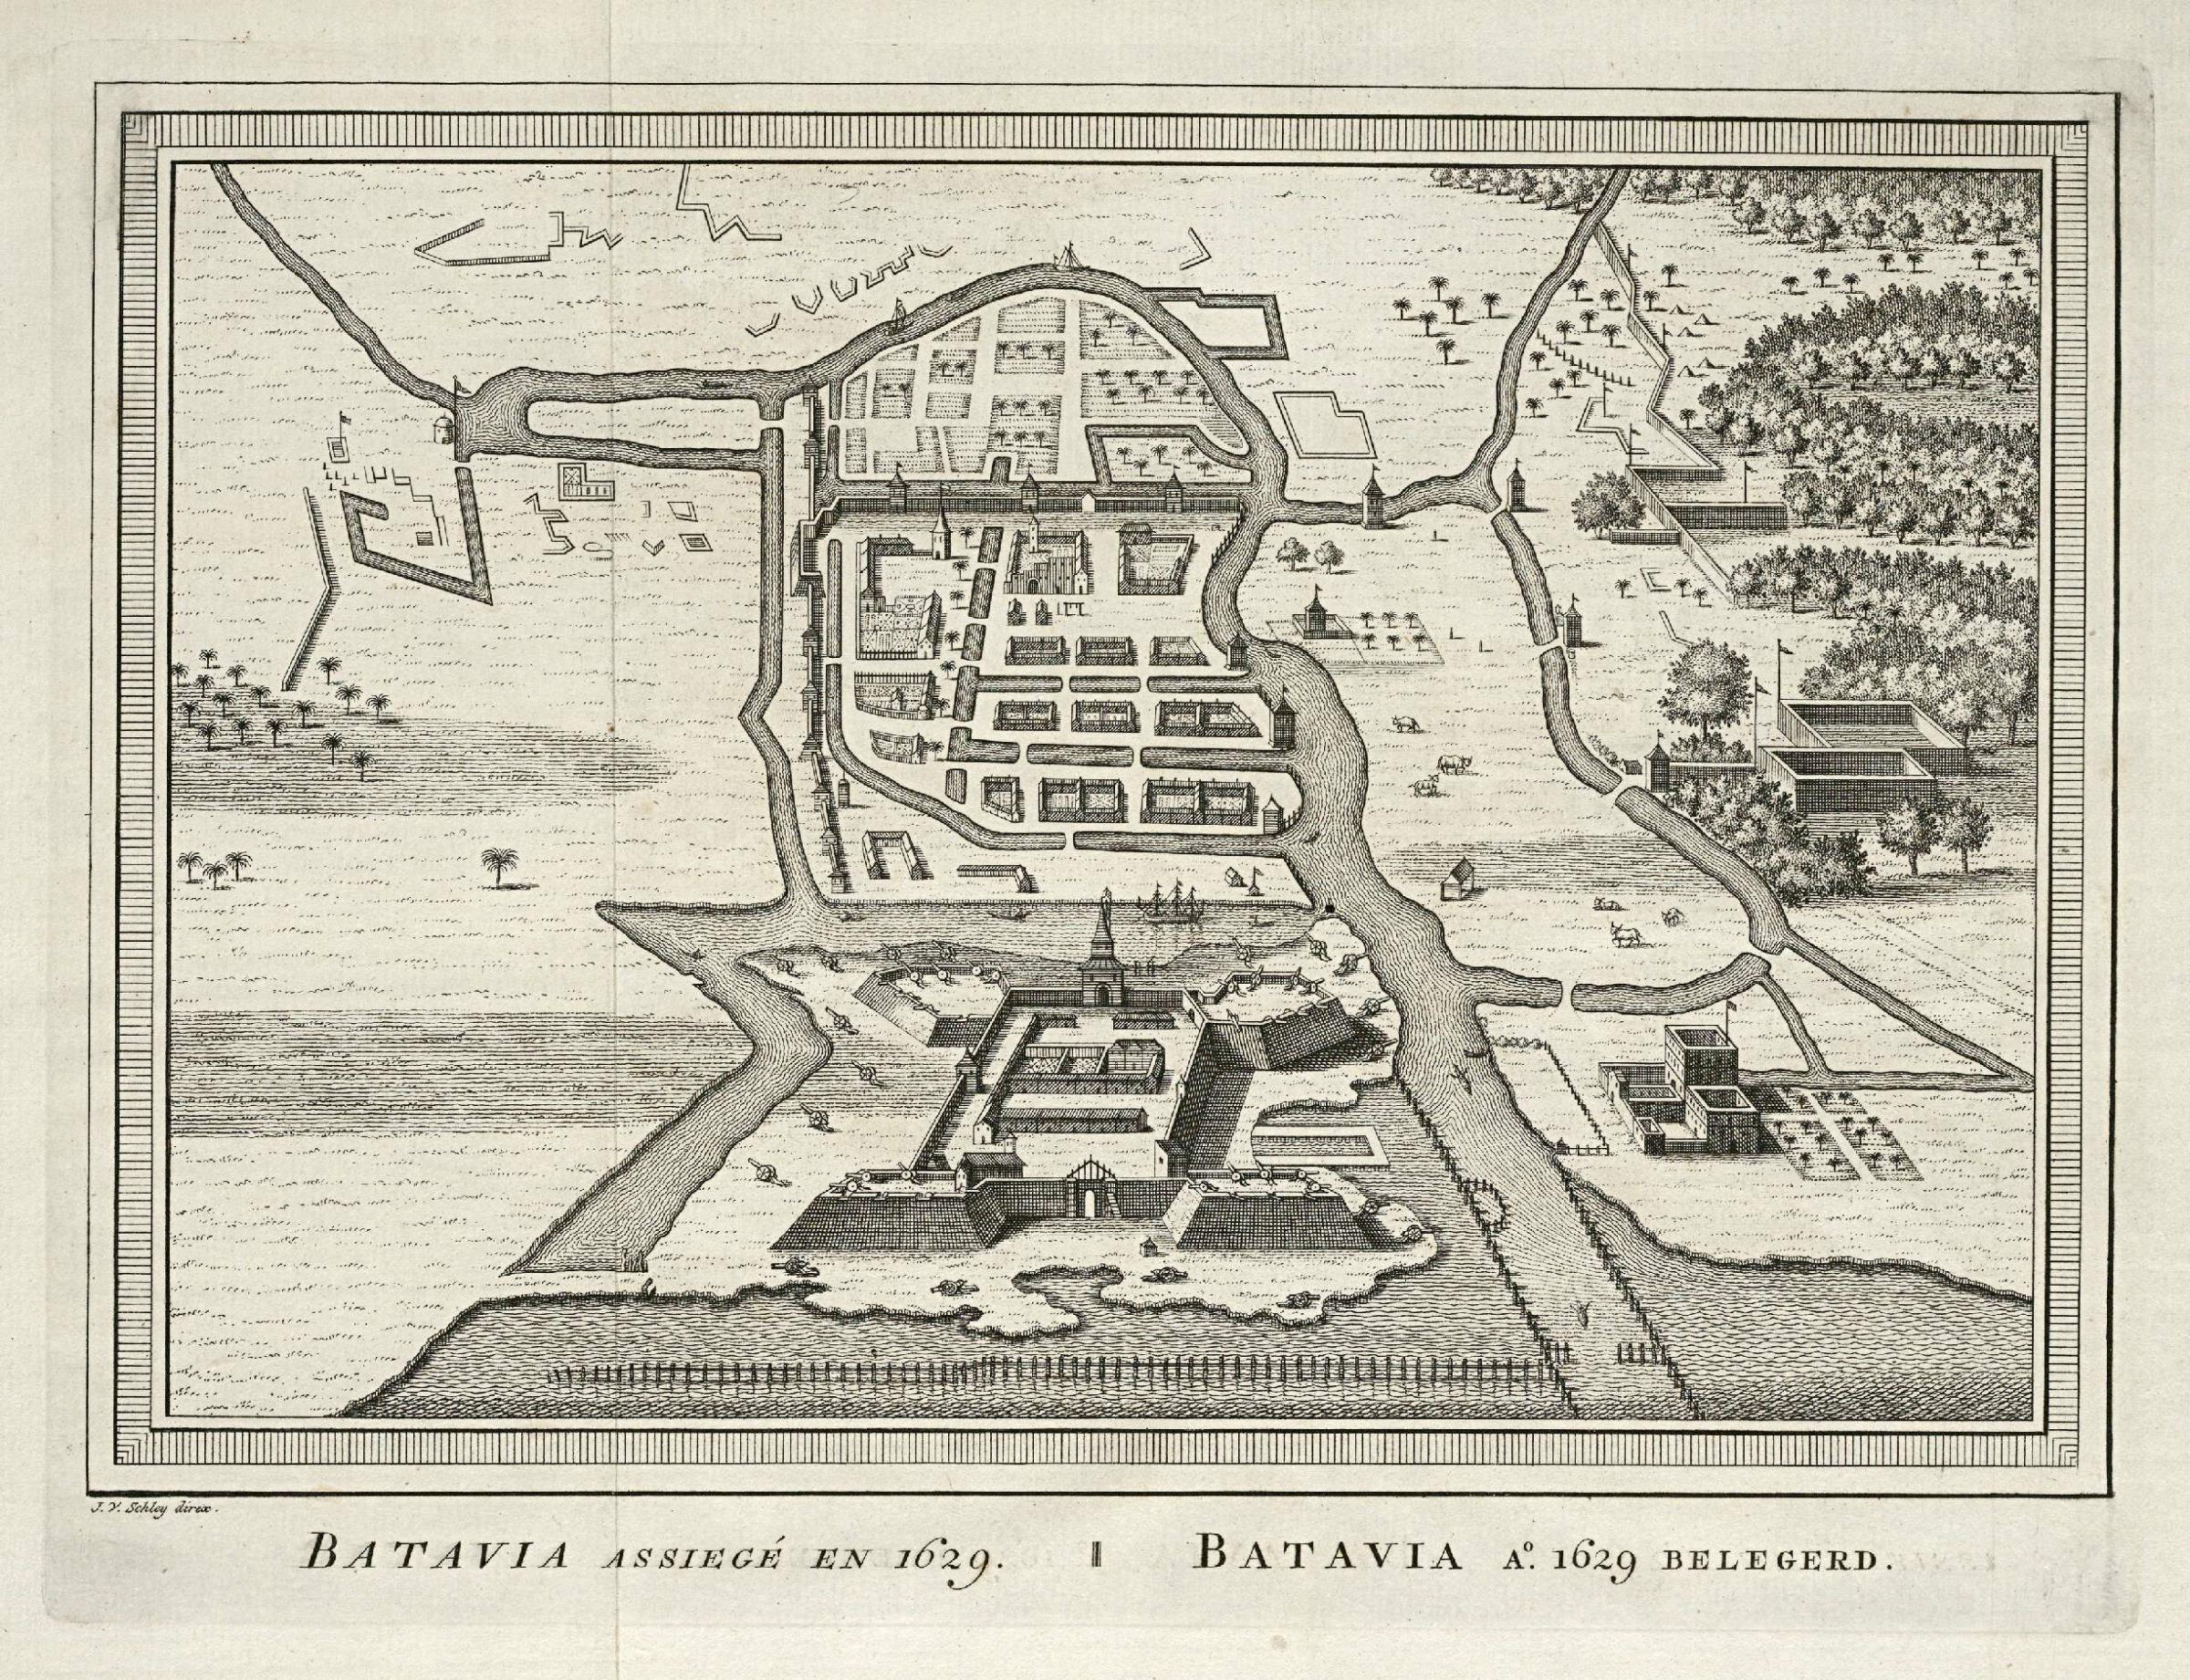 File:AMH-7985-KB Bird's eye view map of the siege of Batavia